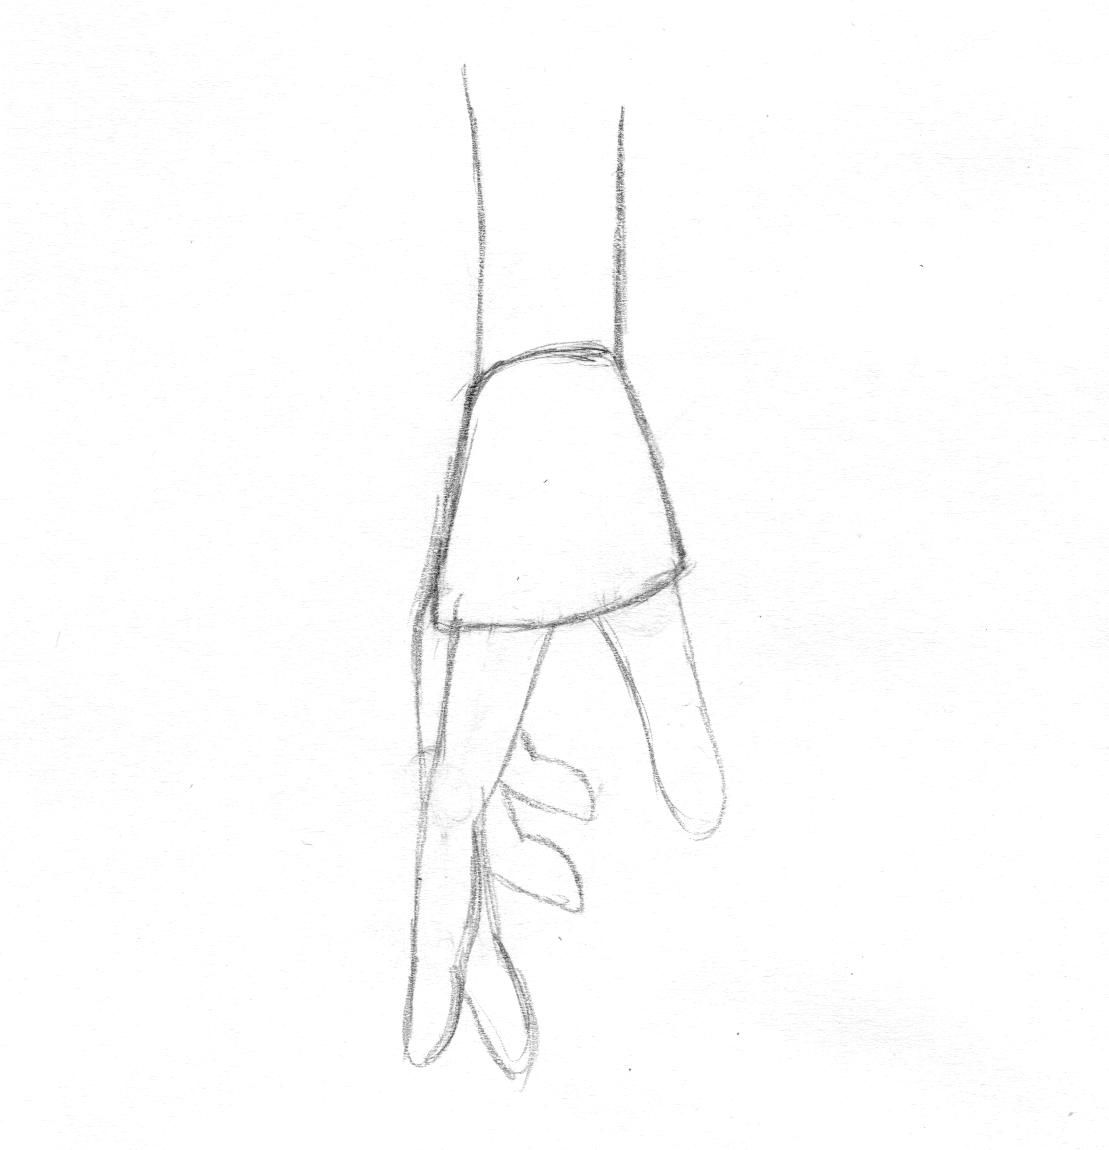 Anime Hands How To Draw A Relaxed Hand